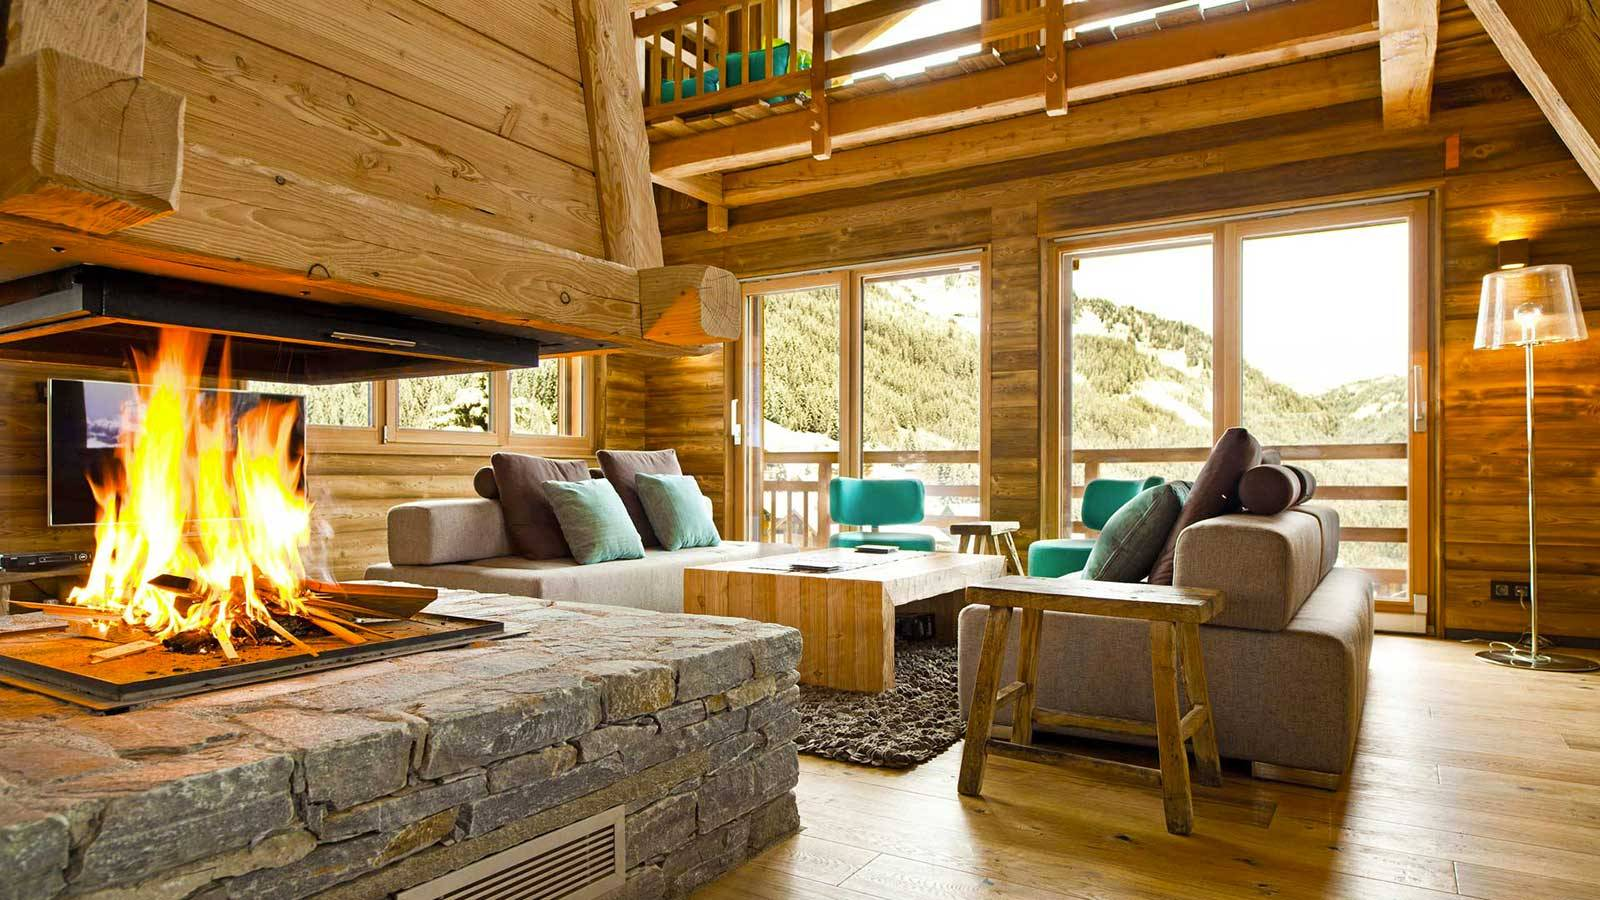 Emejing chalet en bois interieur gallery design trends for Decoration interieur maison